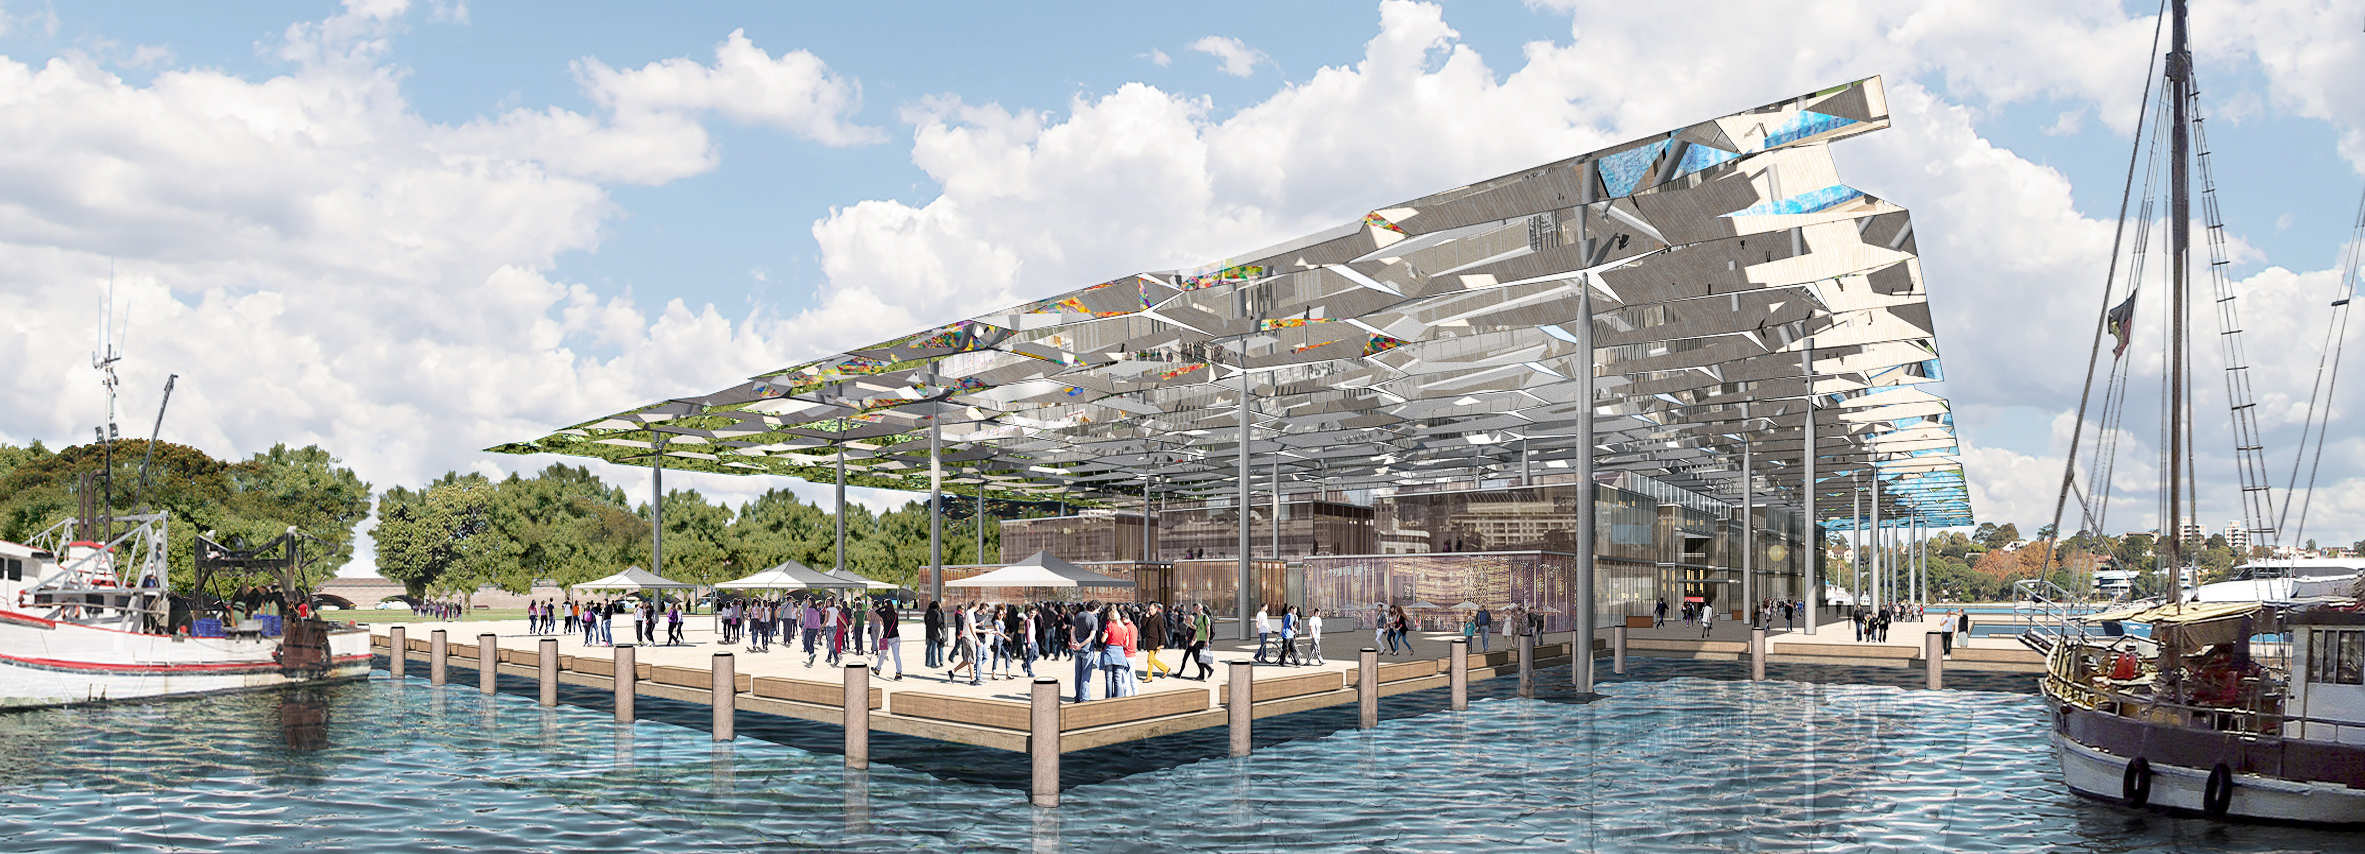 "Allen Jack+Cottier last year took out the ""Masterplanning – Future Projects"" category for the Sydney Fish markets at the prestigious World Architecture Festival."